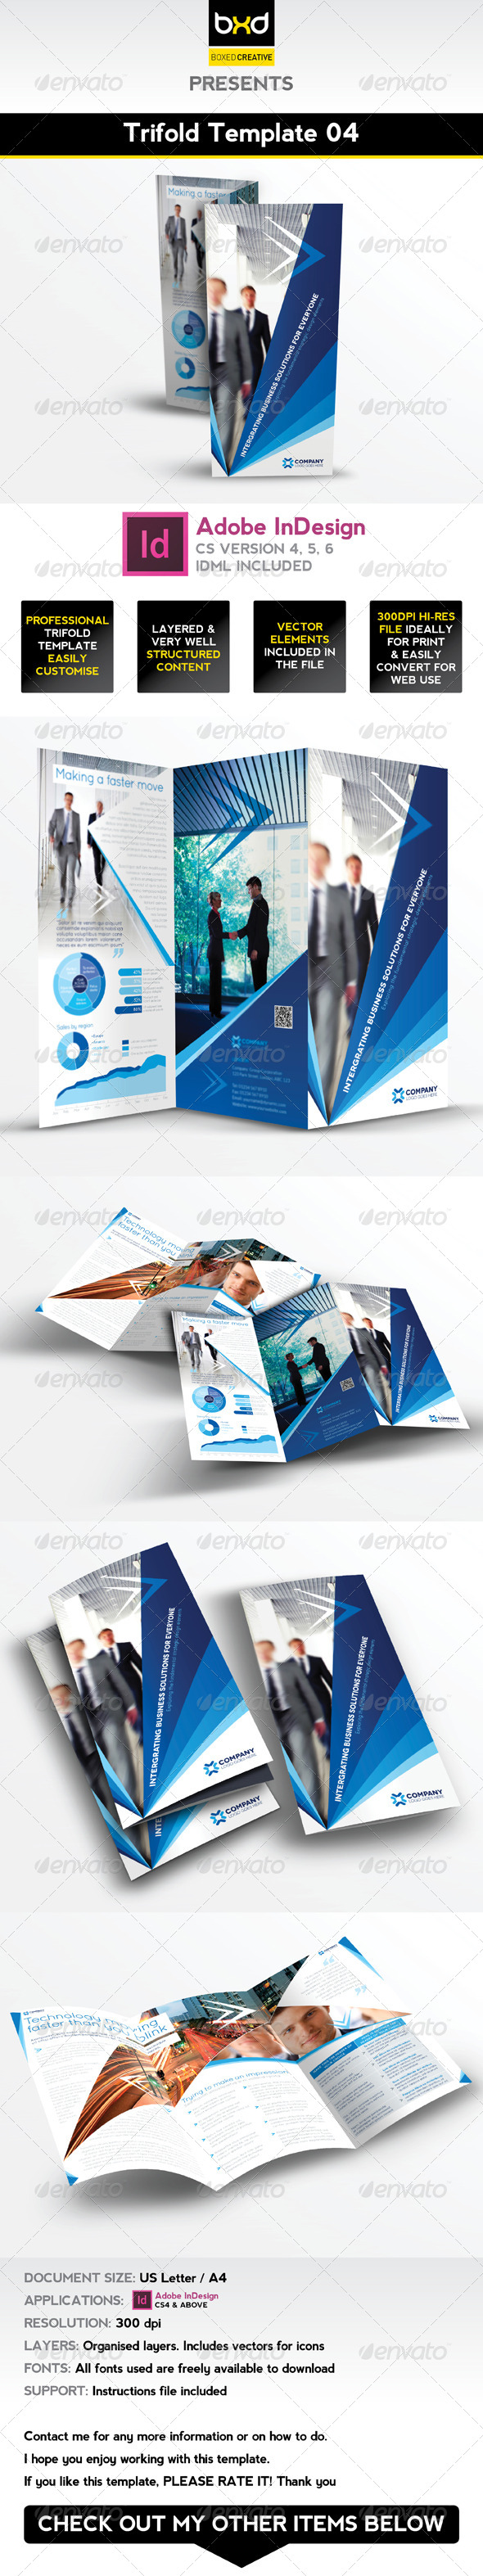 Trifold Brochure Template 04 - InDesign Layout - Corporate Brochures